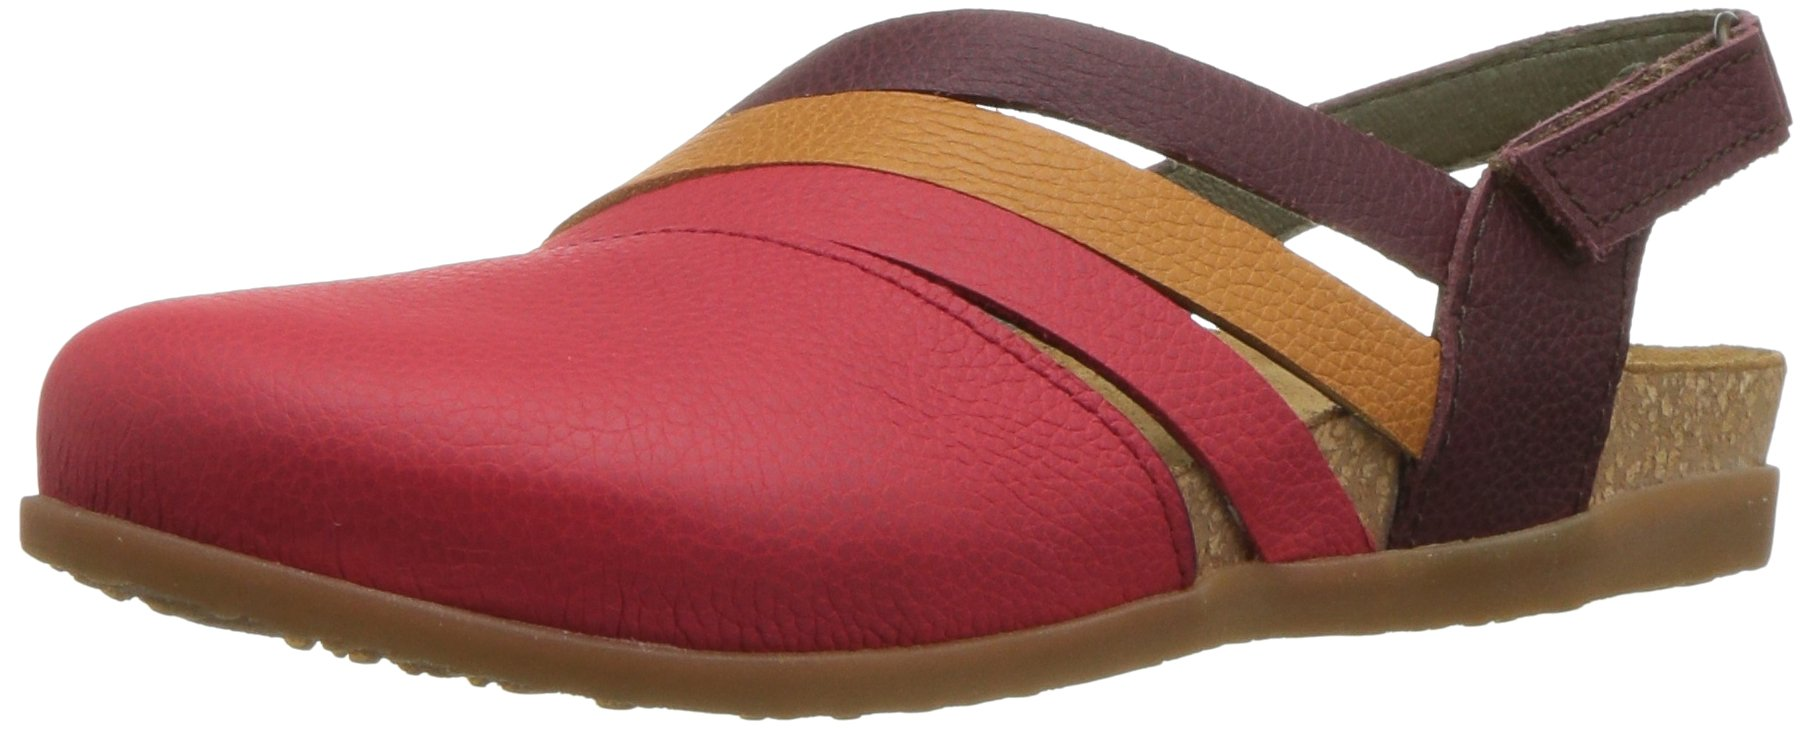 El Naturalista Women's NF45 Soft Grain Zumaia Flat Sandal, Grosella Mixed, 37 Medium EU (7 US)